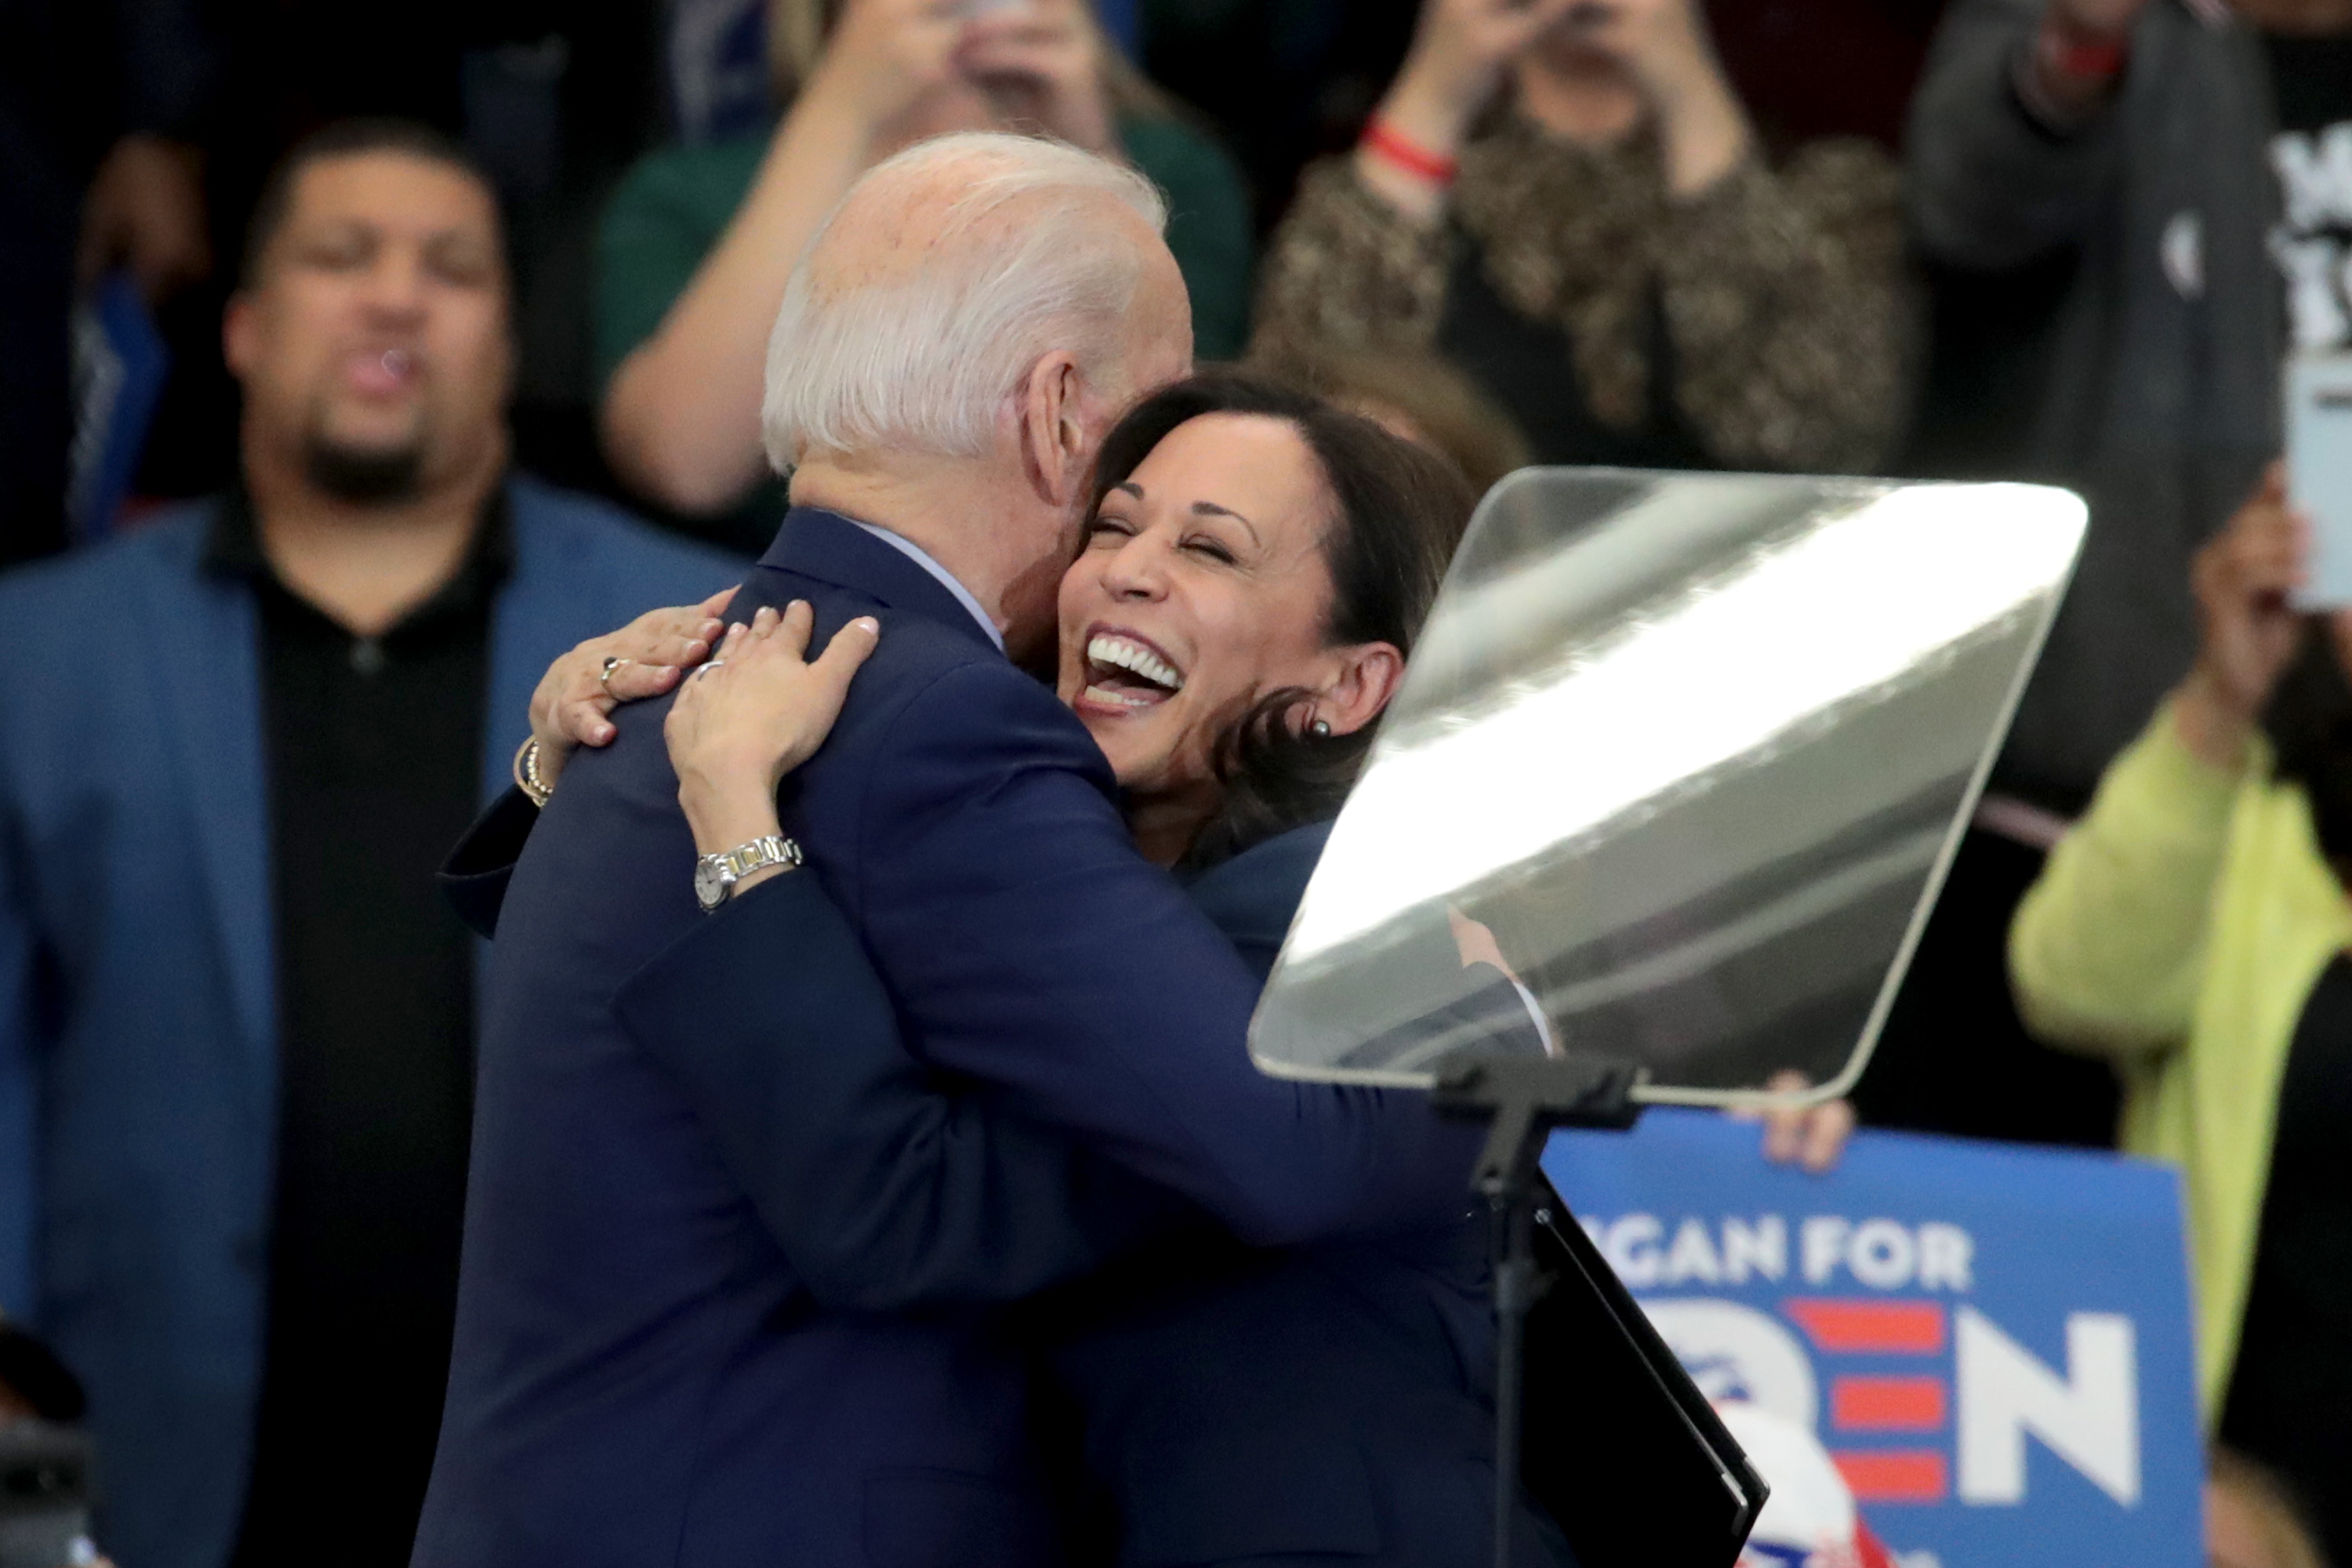 Sen. Kamala Harris hugs Democratic presidential candidate former Vice President Joe Biden after introducing him at a campaign rally at Renaissance High School on March 09, 2020 in Detroit, Michigan. (Scott Olson/Getty Images)